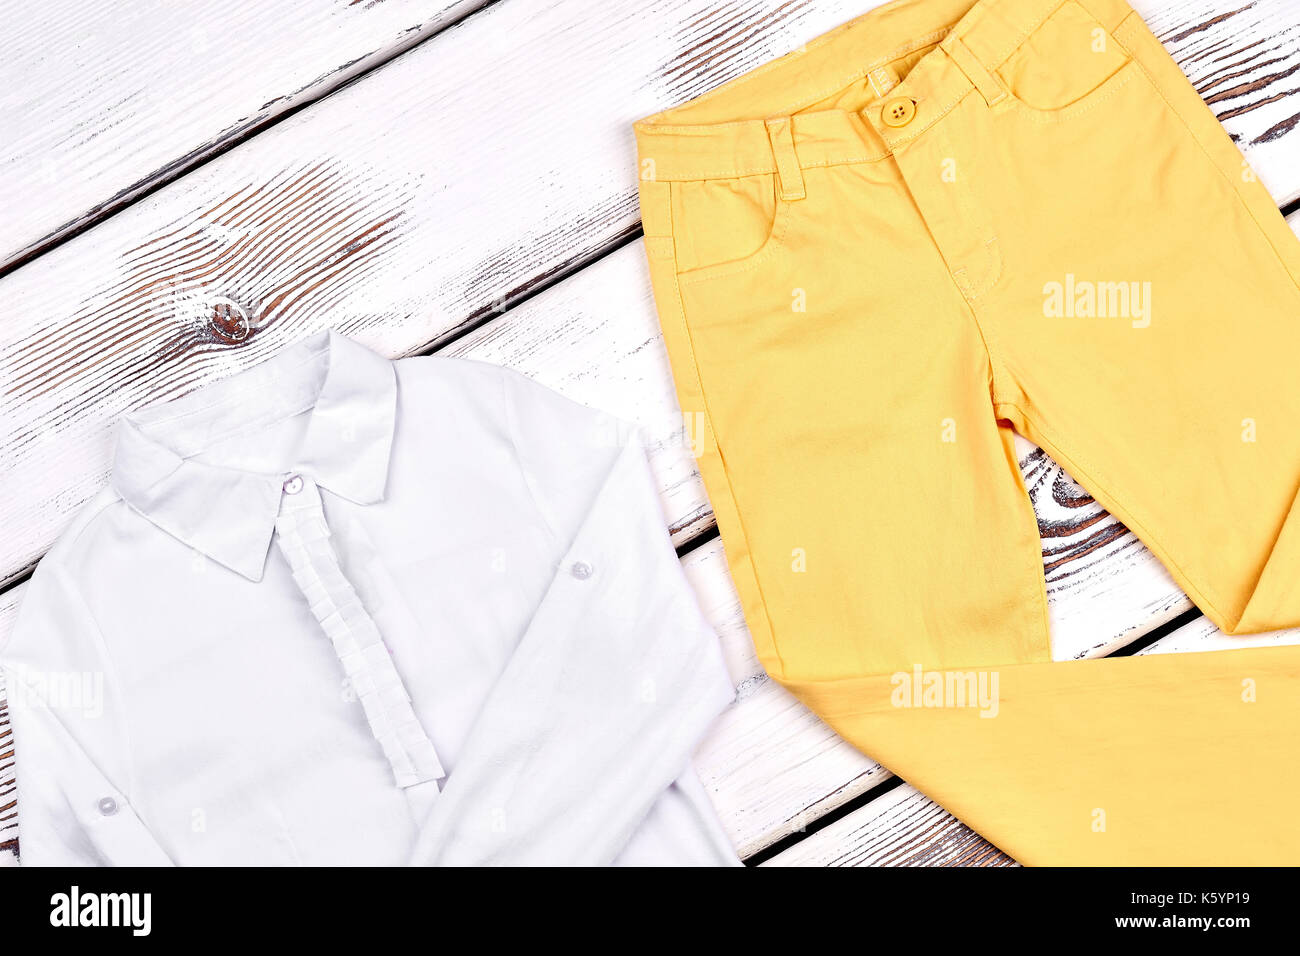 Girls High Quality Cotton Garment Teen Girl Beautiful Long Sleeve Blouse Yellow Skinny Pants On Wooden Background Childrens Clothes On Sale